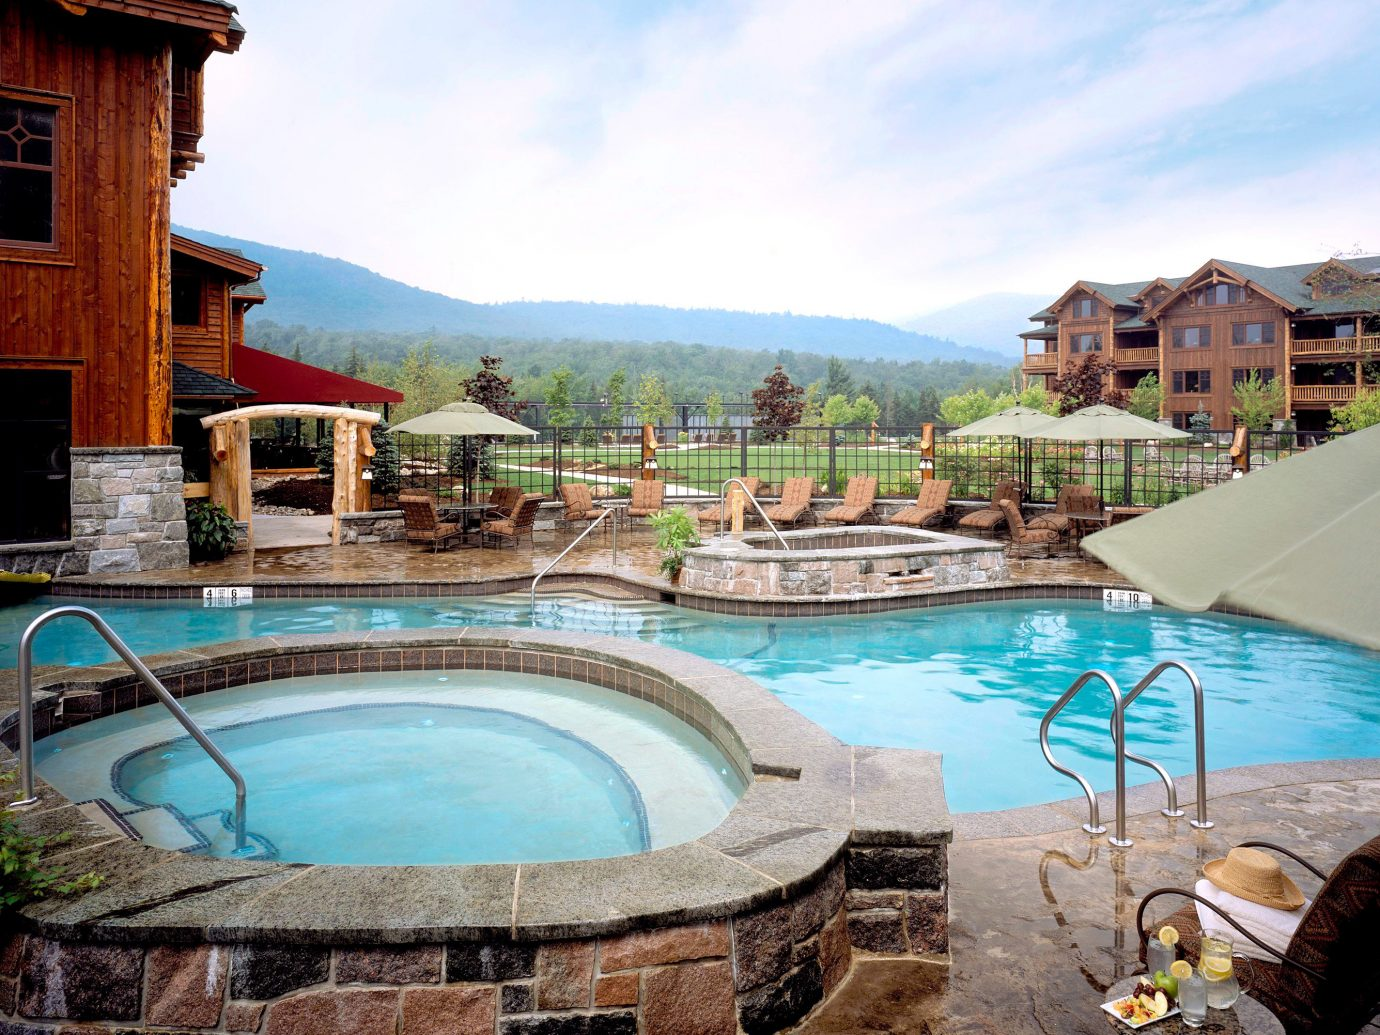 Hot tub/Jacuzzi Hotels Lodge Luxury New York Pool Romantic Romantic Hotels building sky outdoor swimming pool property leisure estate Resort vacation Villa backyard resort town real estate mansion hacienda swimming